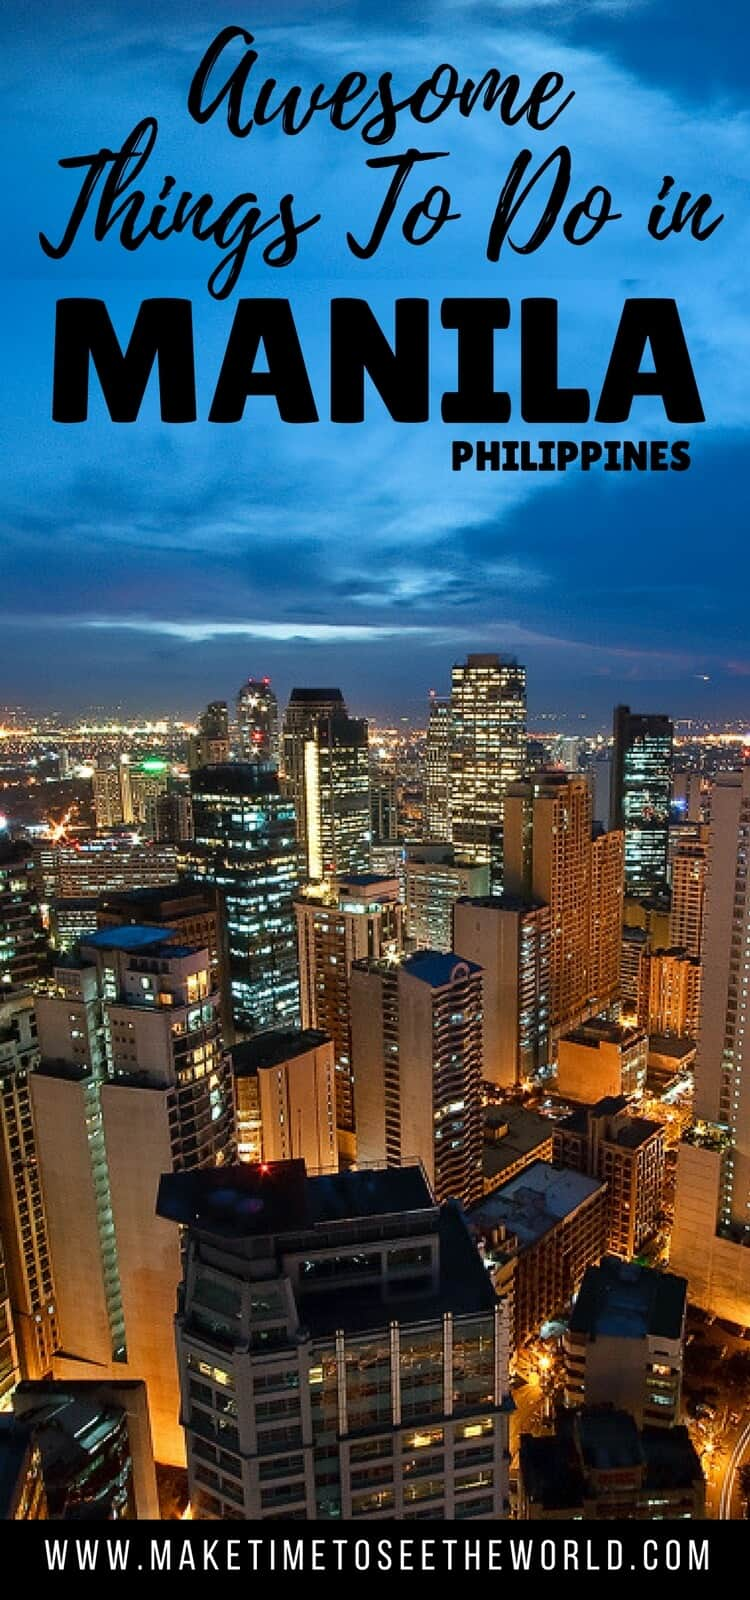 Places to visit in Manila